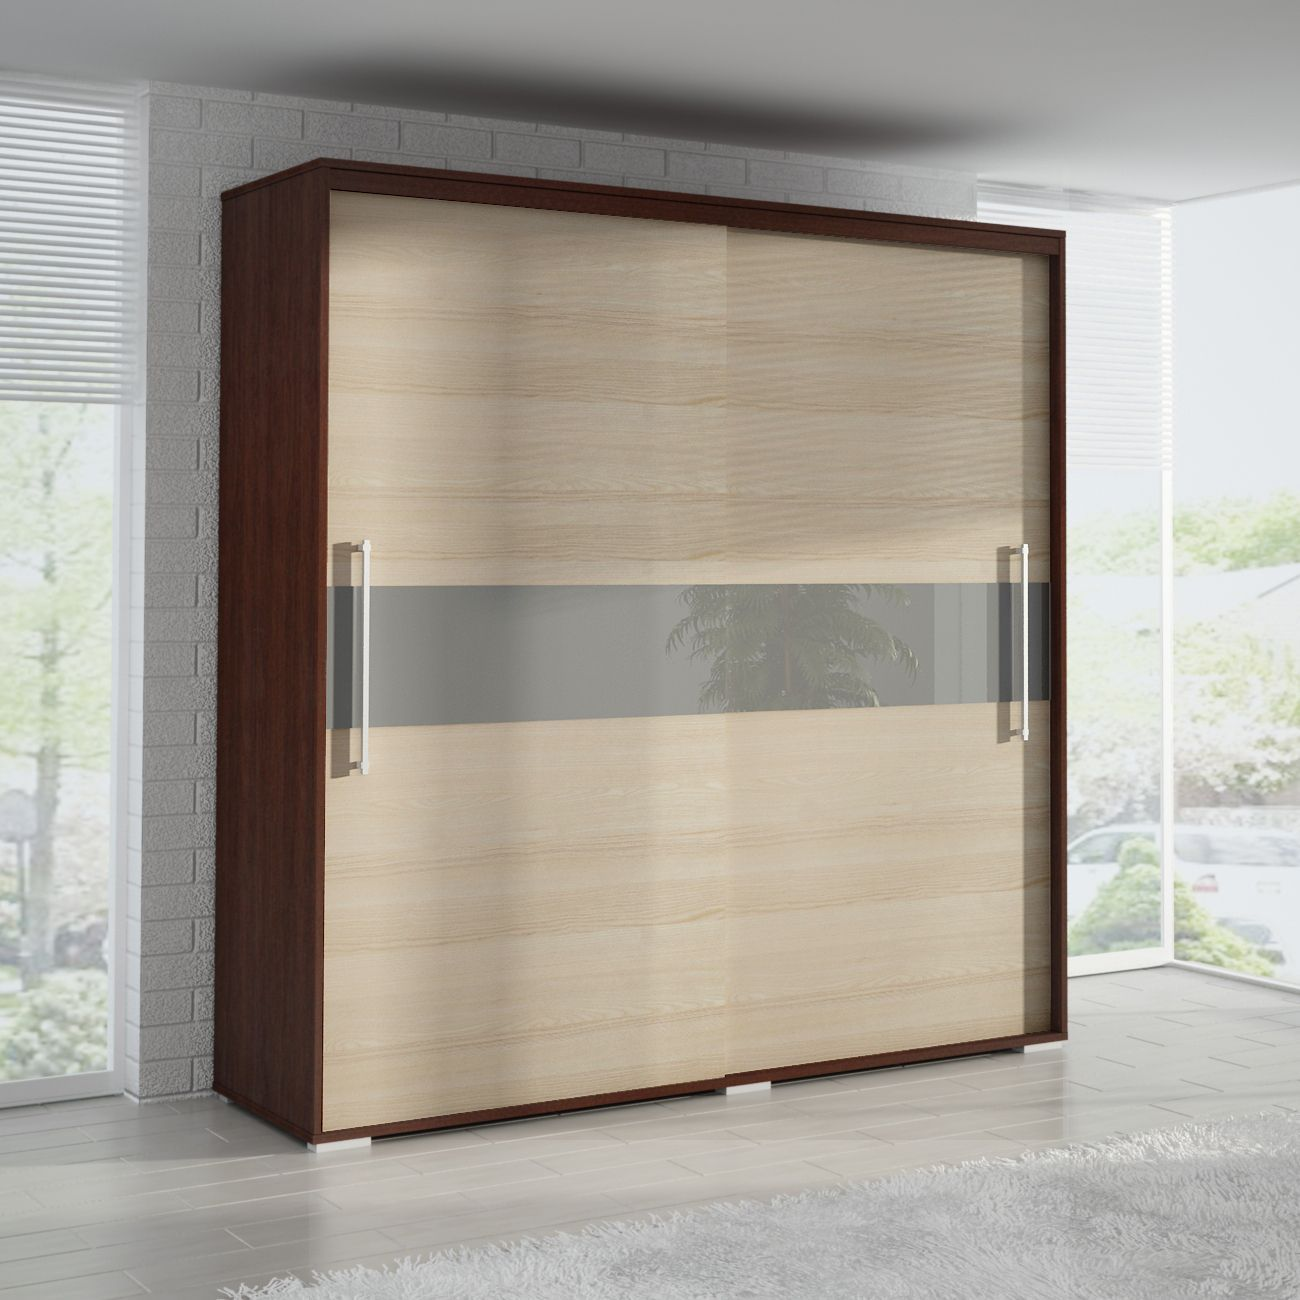 Wardrobe closet sliding door calegion master bedroom for Sliding doors